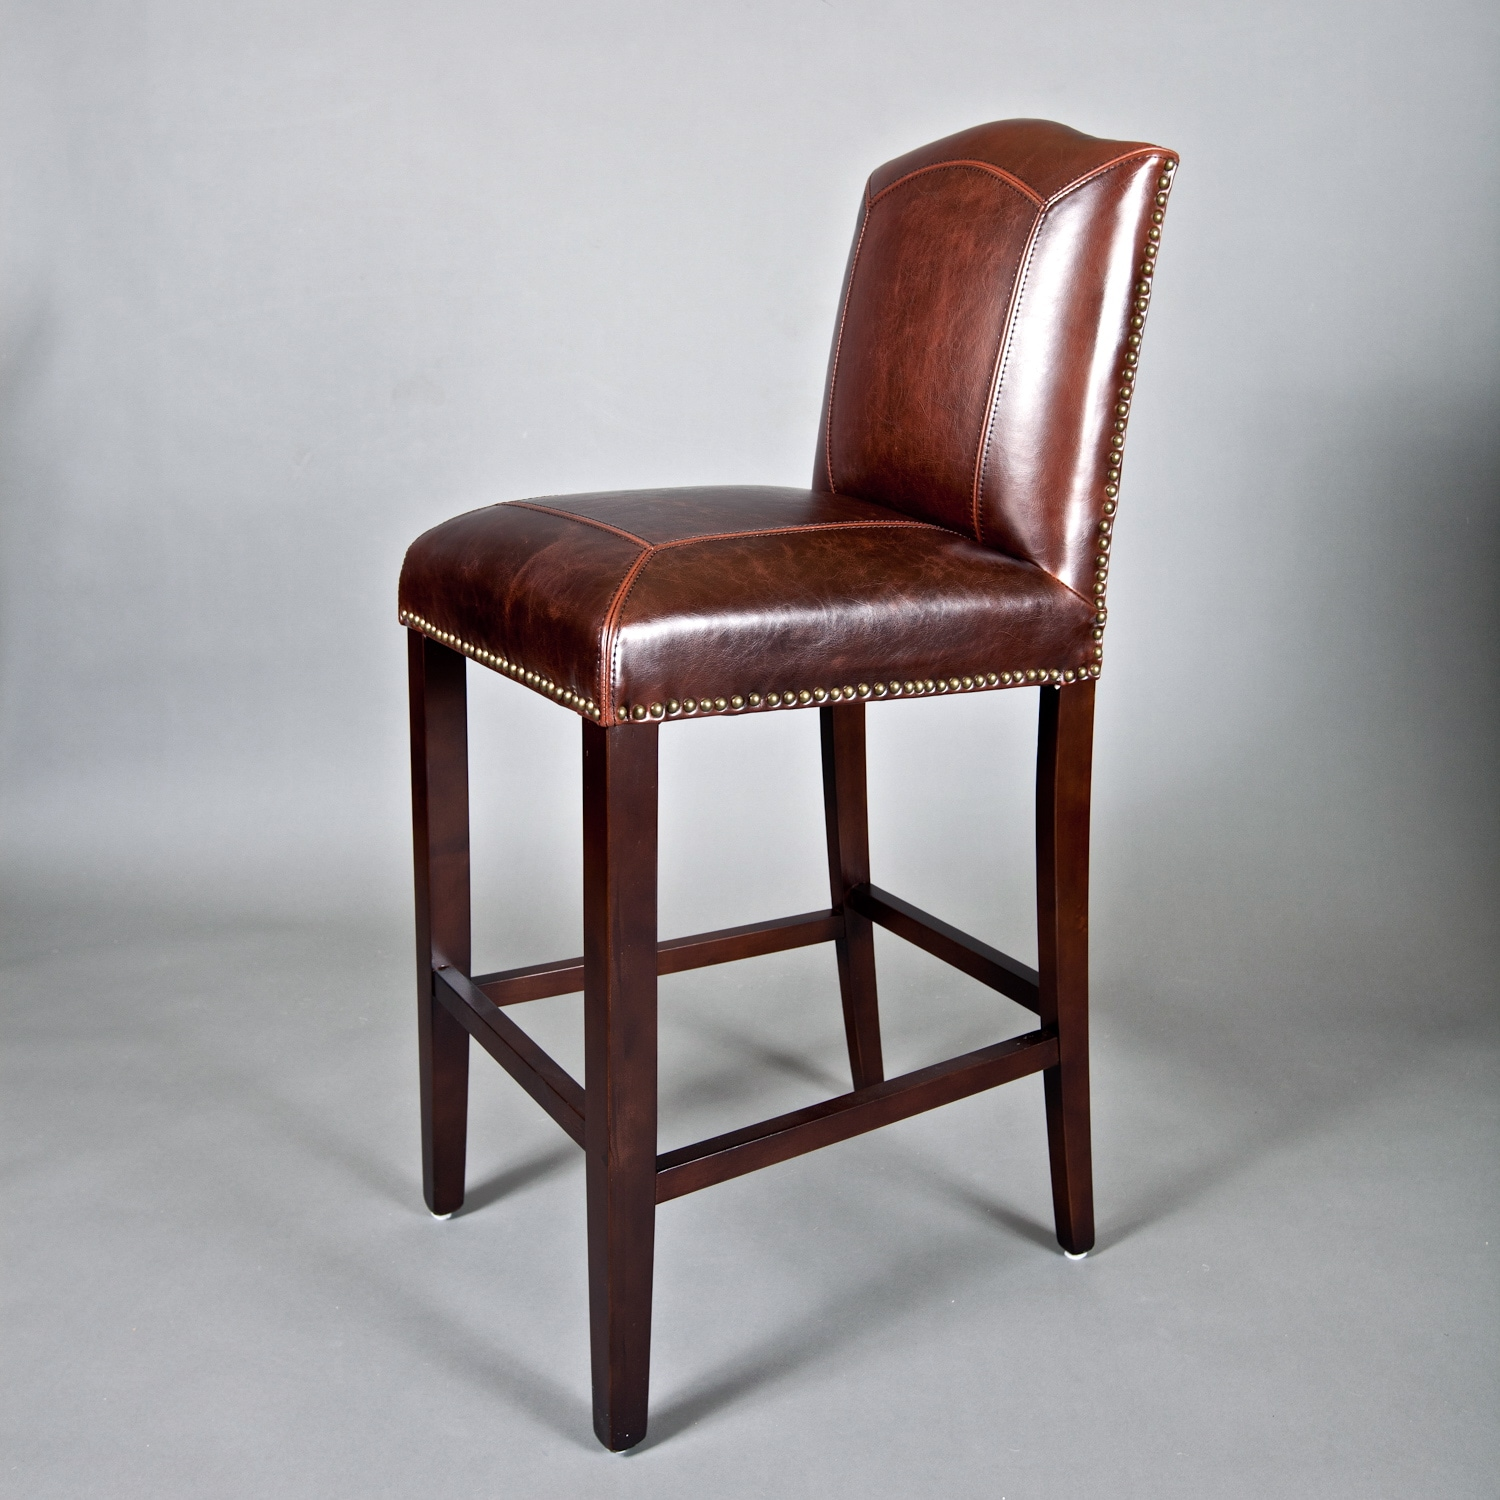 Counter Stools Overstock: Monroe Leather Bar Stool